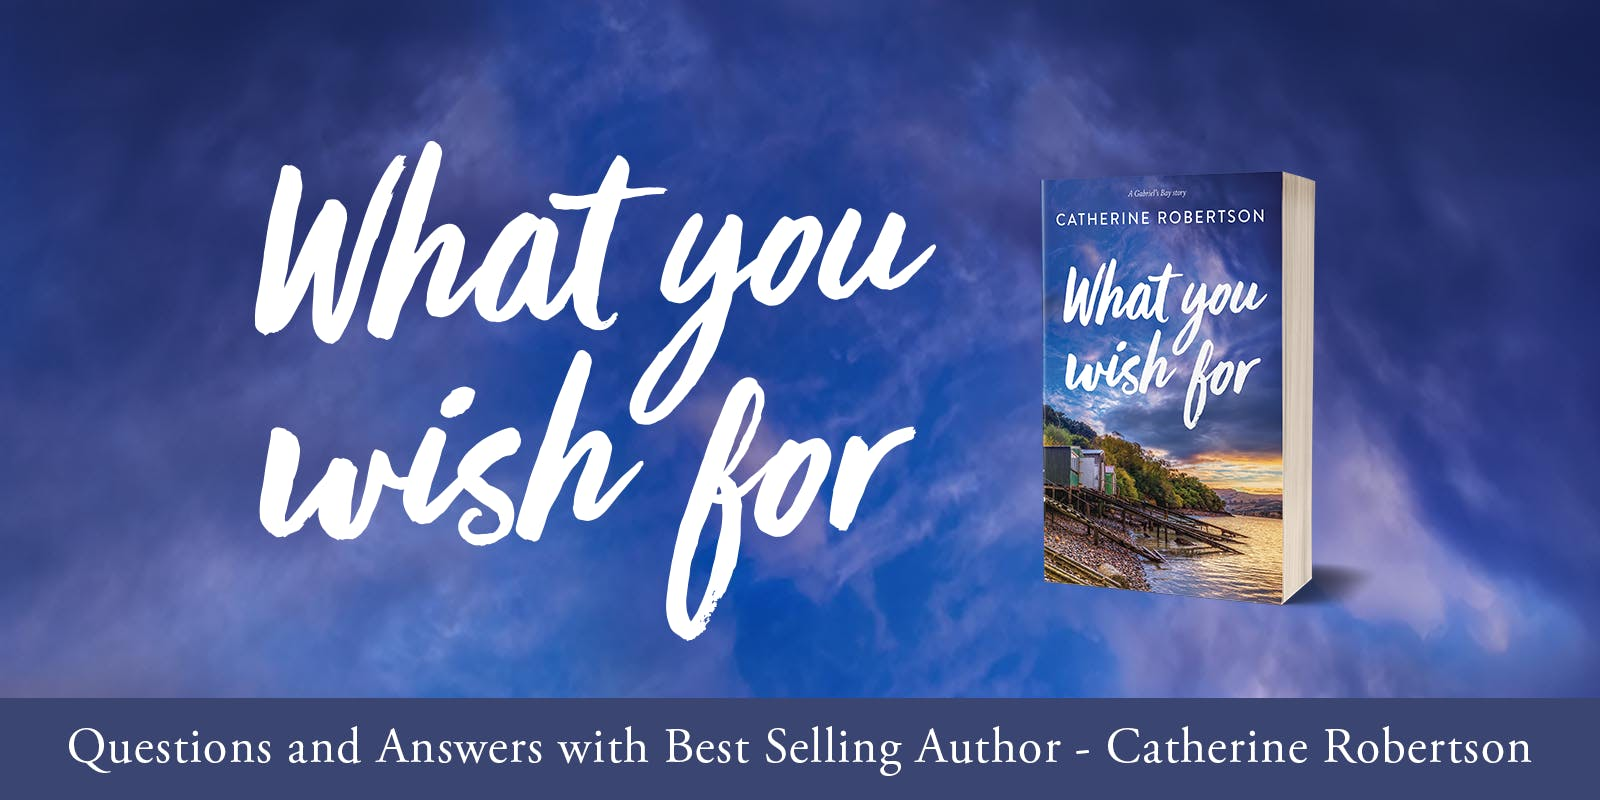 A conversation with Catherine Robertson